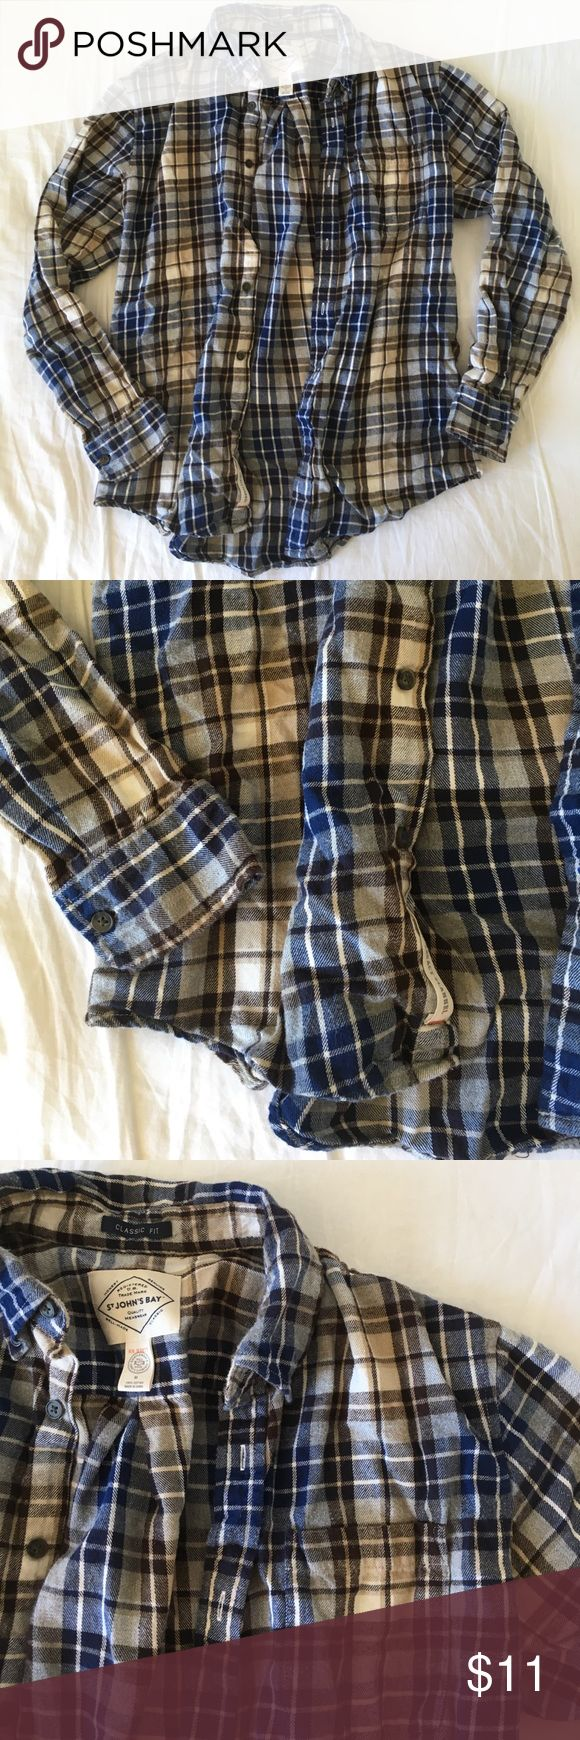 Men's plaid shirt Cozy sweater plaid shirt. No flaws. 20% off bundles and excepting all reasonable offers. Brand is not Patagonia Patagonia Shirts Casual Button Down Shirts